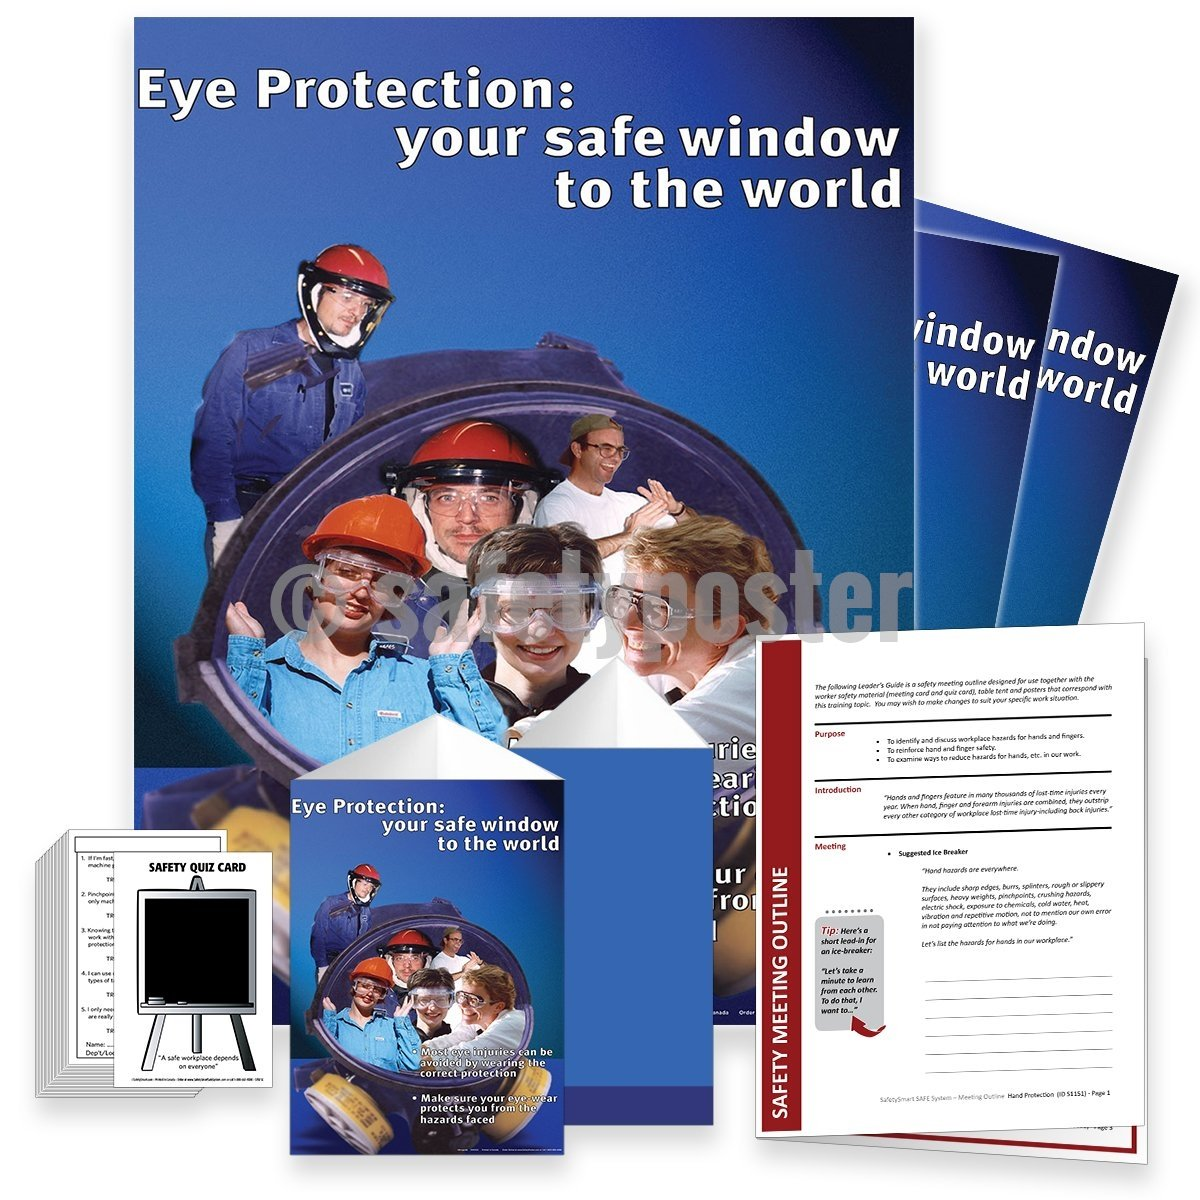 Safety Meeting Kit - Eye Protection Your Safe Window To The World Kits